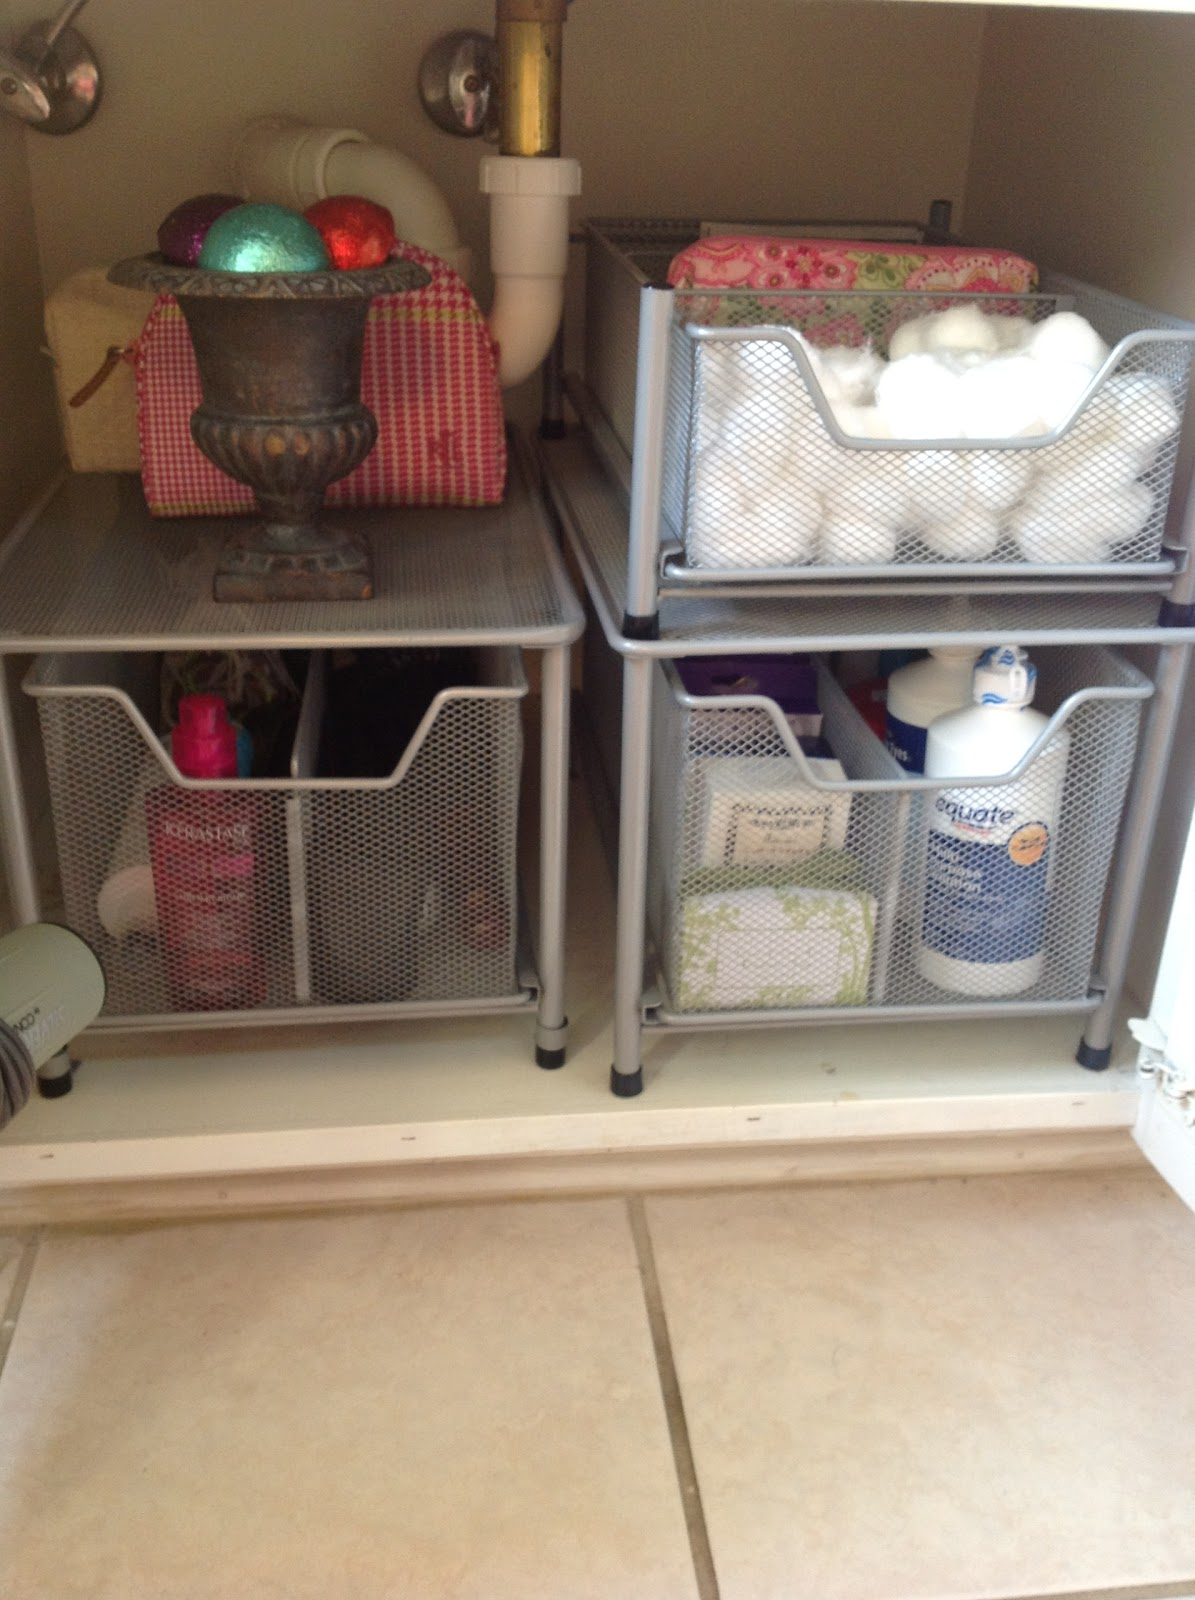 Bathroom Sink Organization